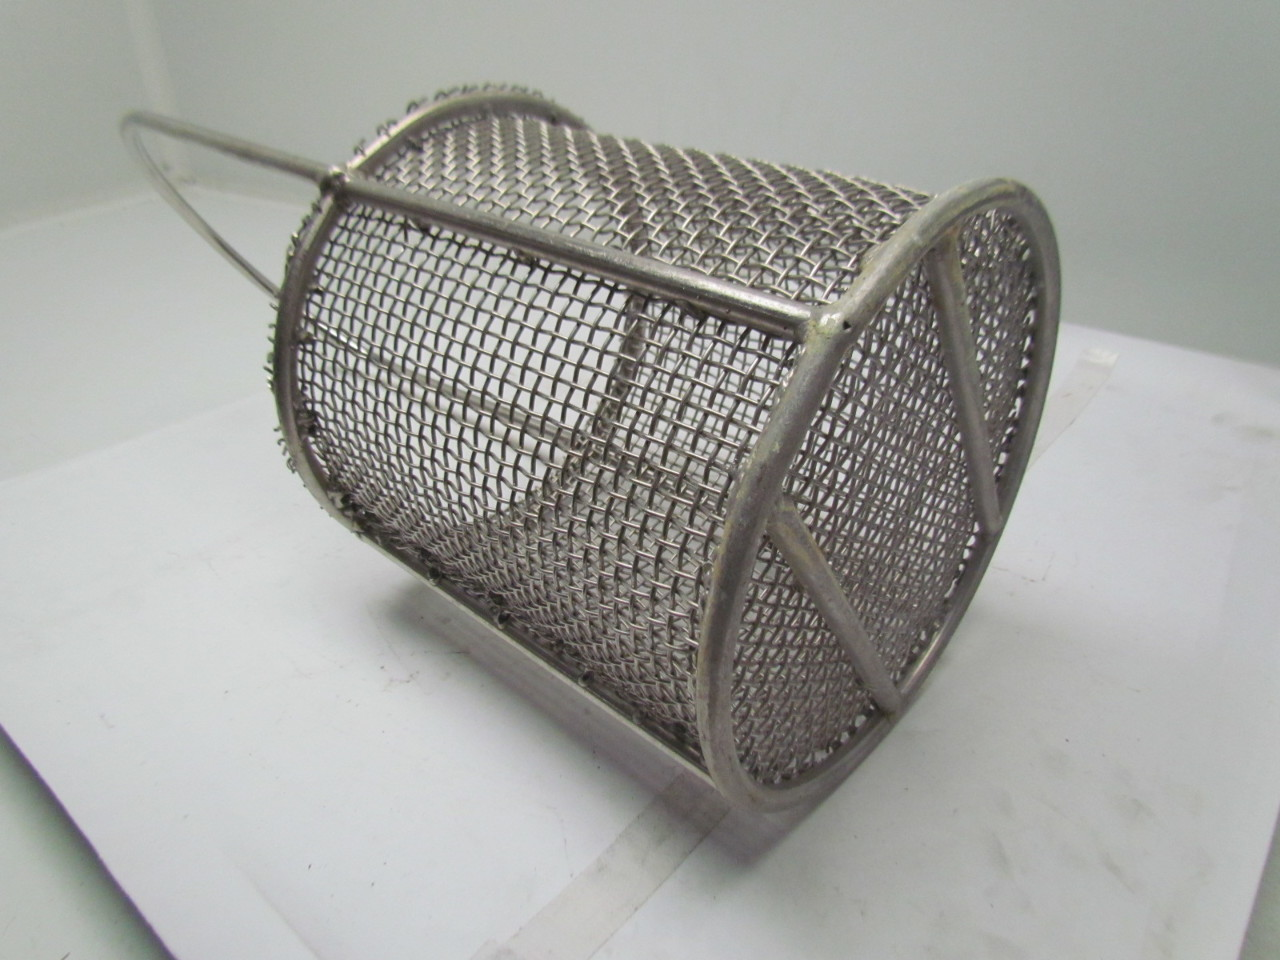 Stainless steel round wire parts washer dip basket 8 diameter 8 3 4 quo - Diametre cercle basket ...